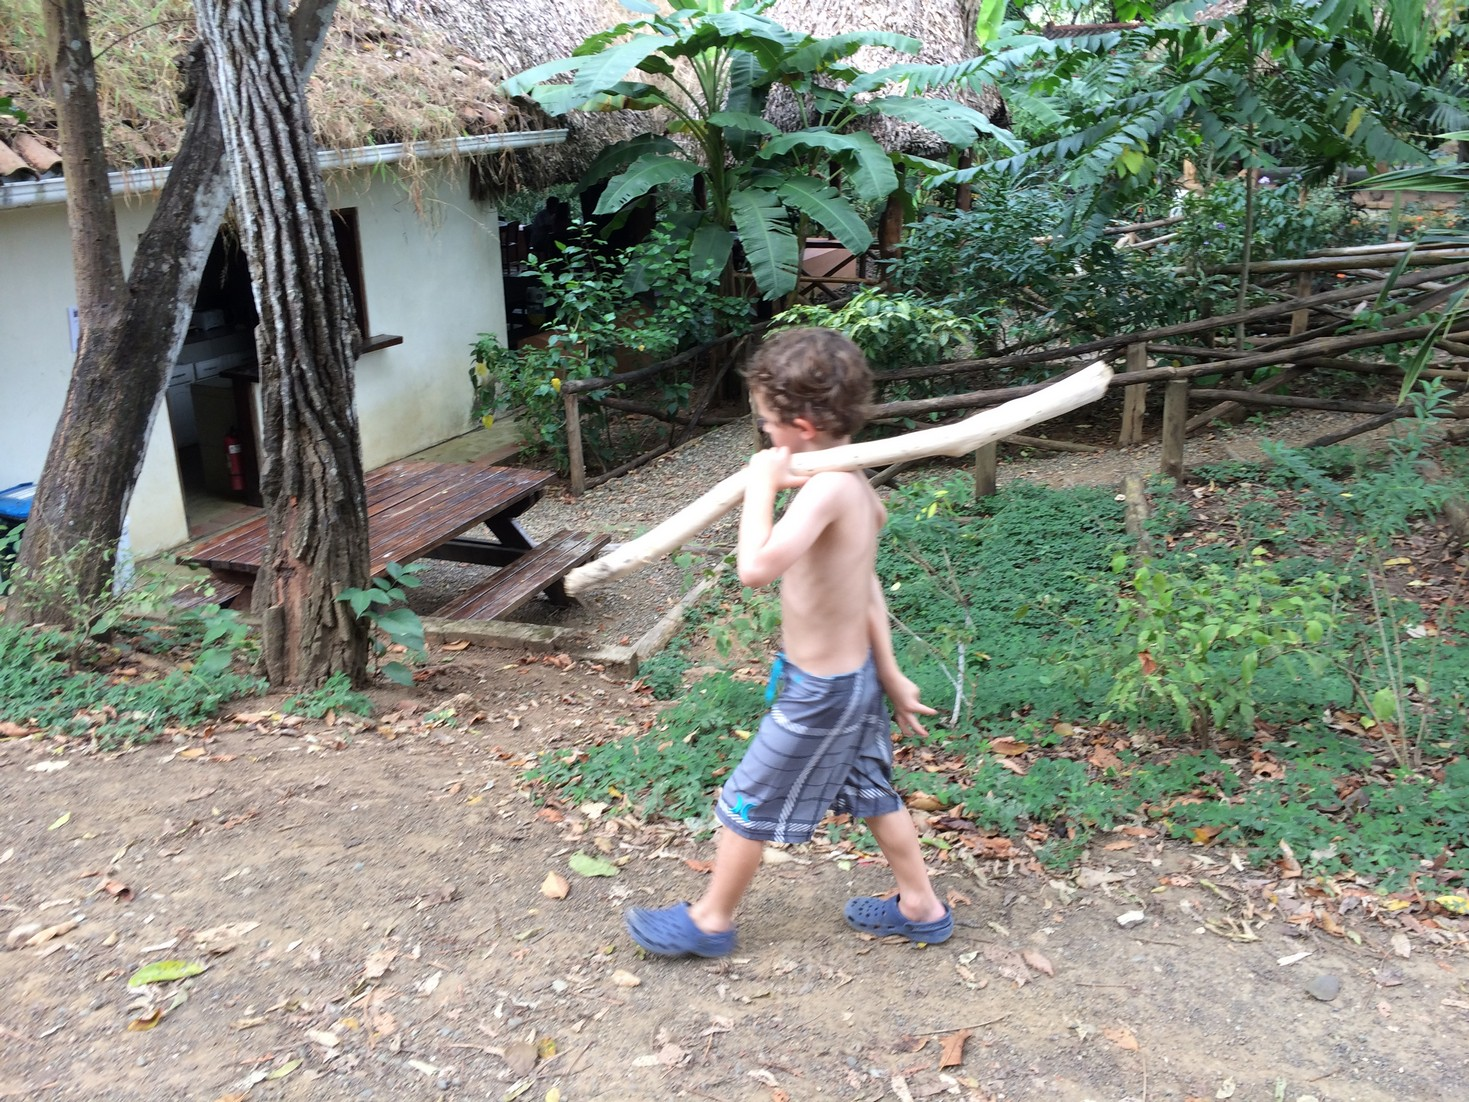 """Tag found this stick and decided he wanted to take it to the waterfall. About 3/4 of the way there he decided to put it down and leave it in the woods """"so the monkeys could play with it""""."""